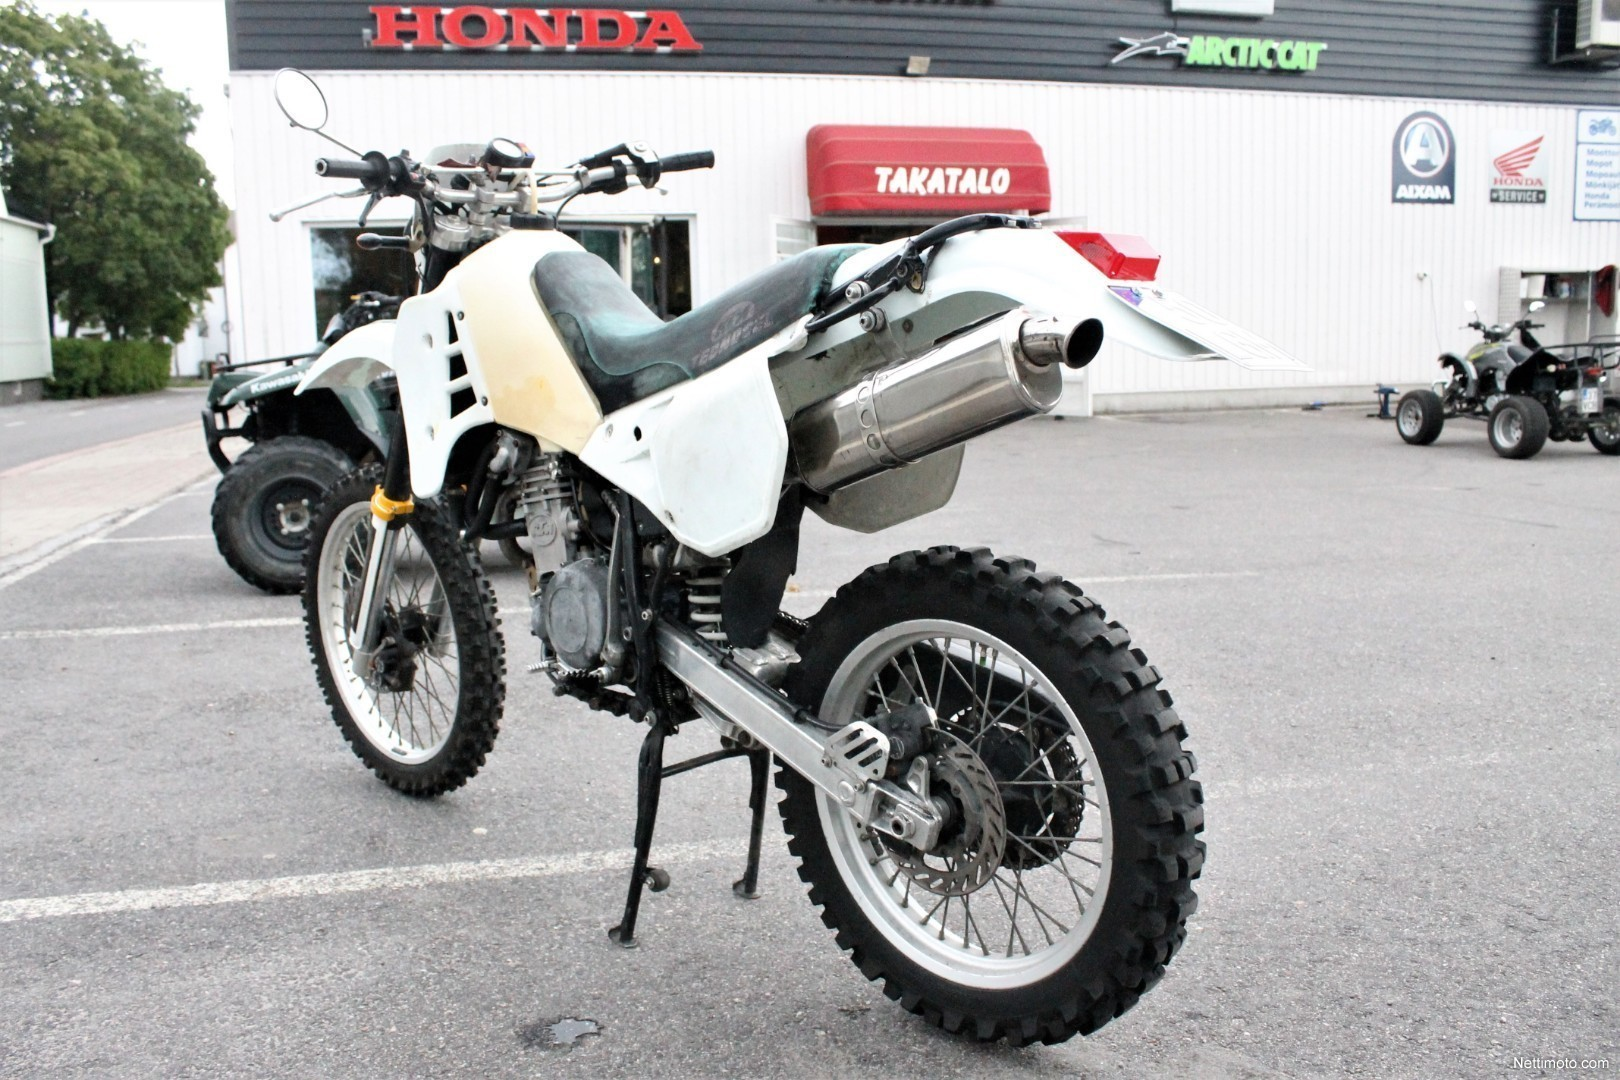 Motorcycle Irbis GR 250: photo, specifications, pros and cons, reviews 11